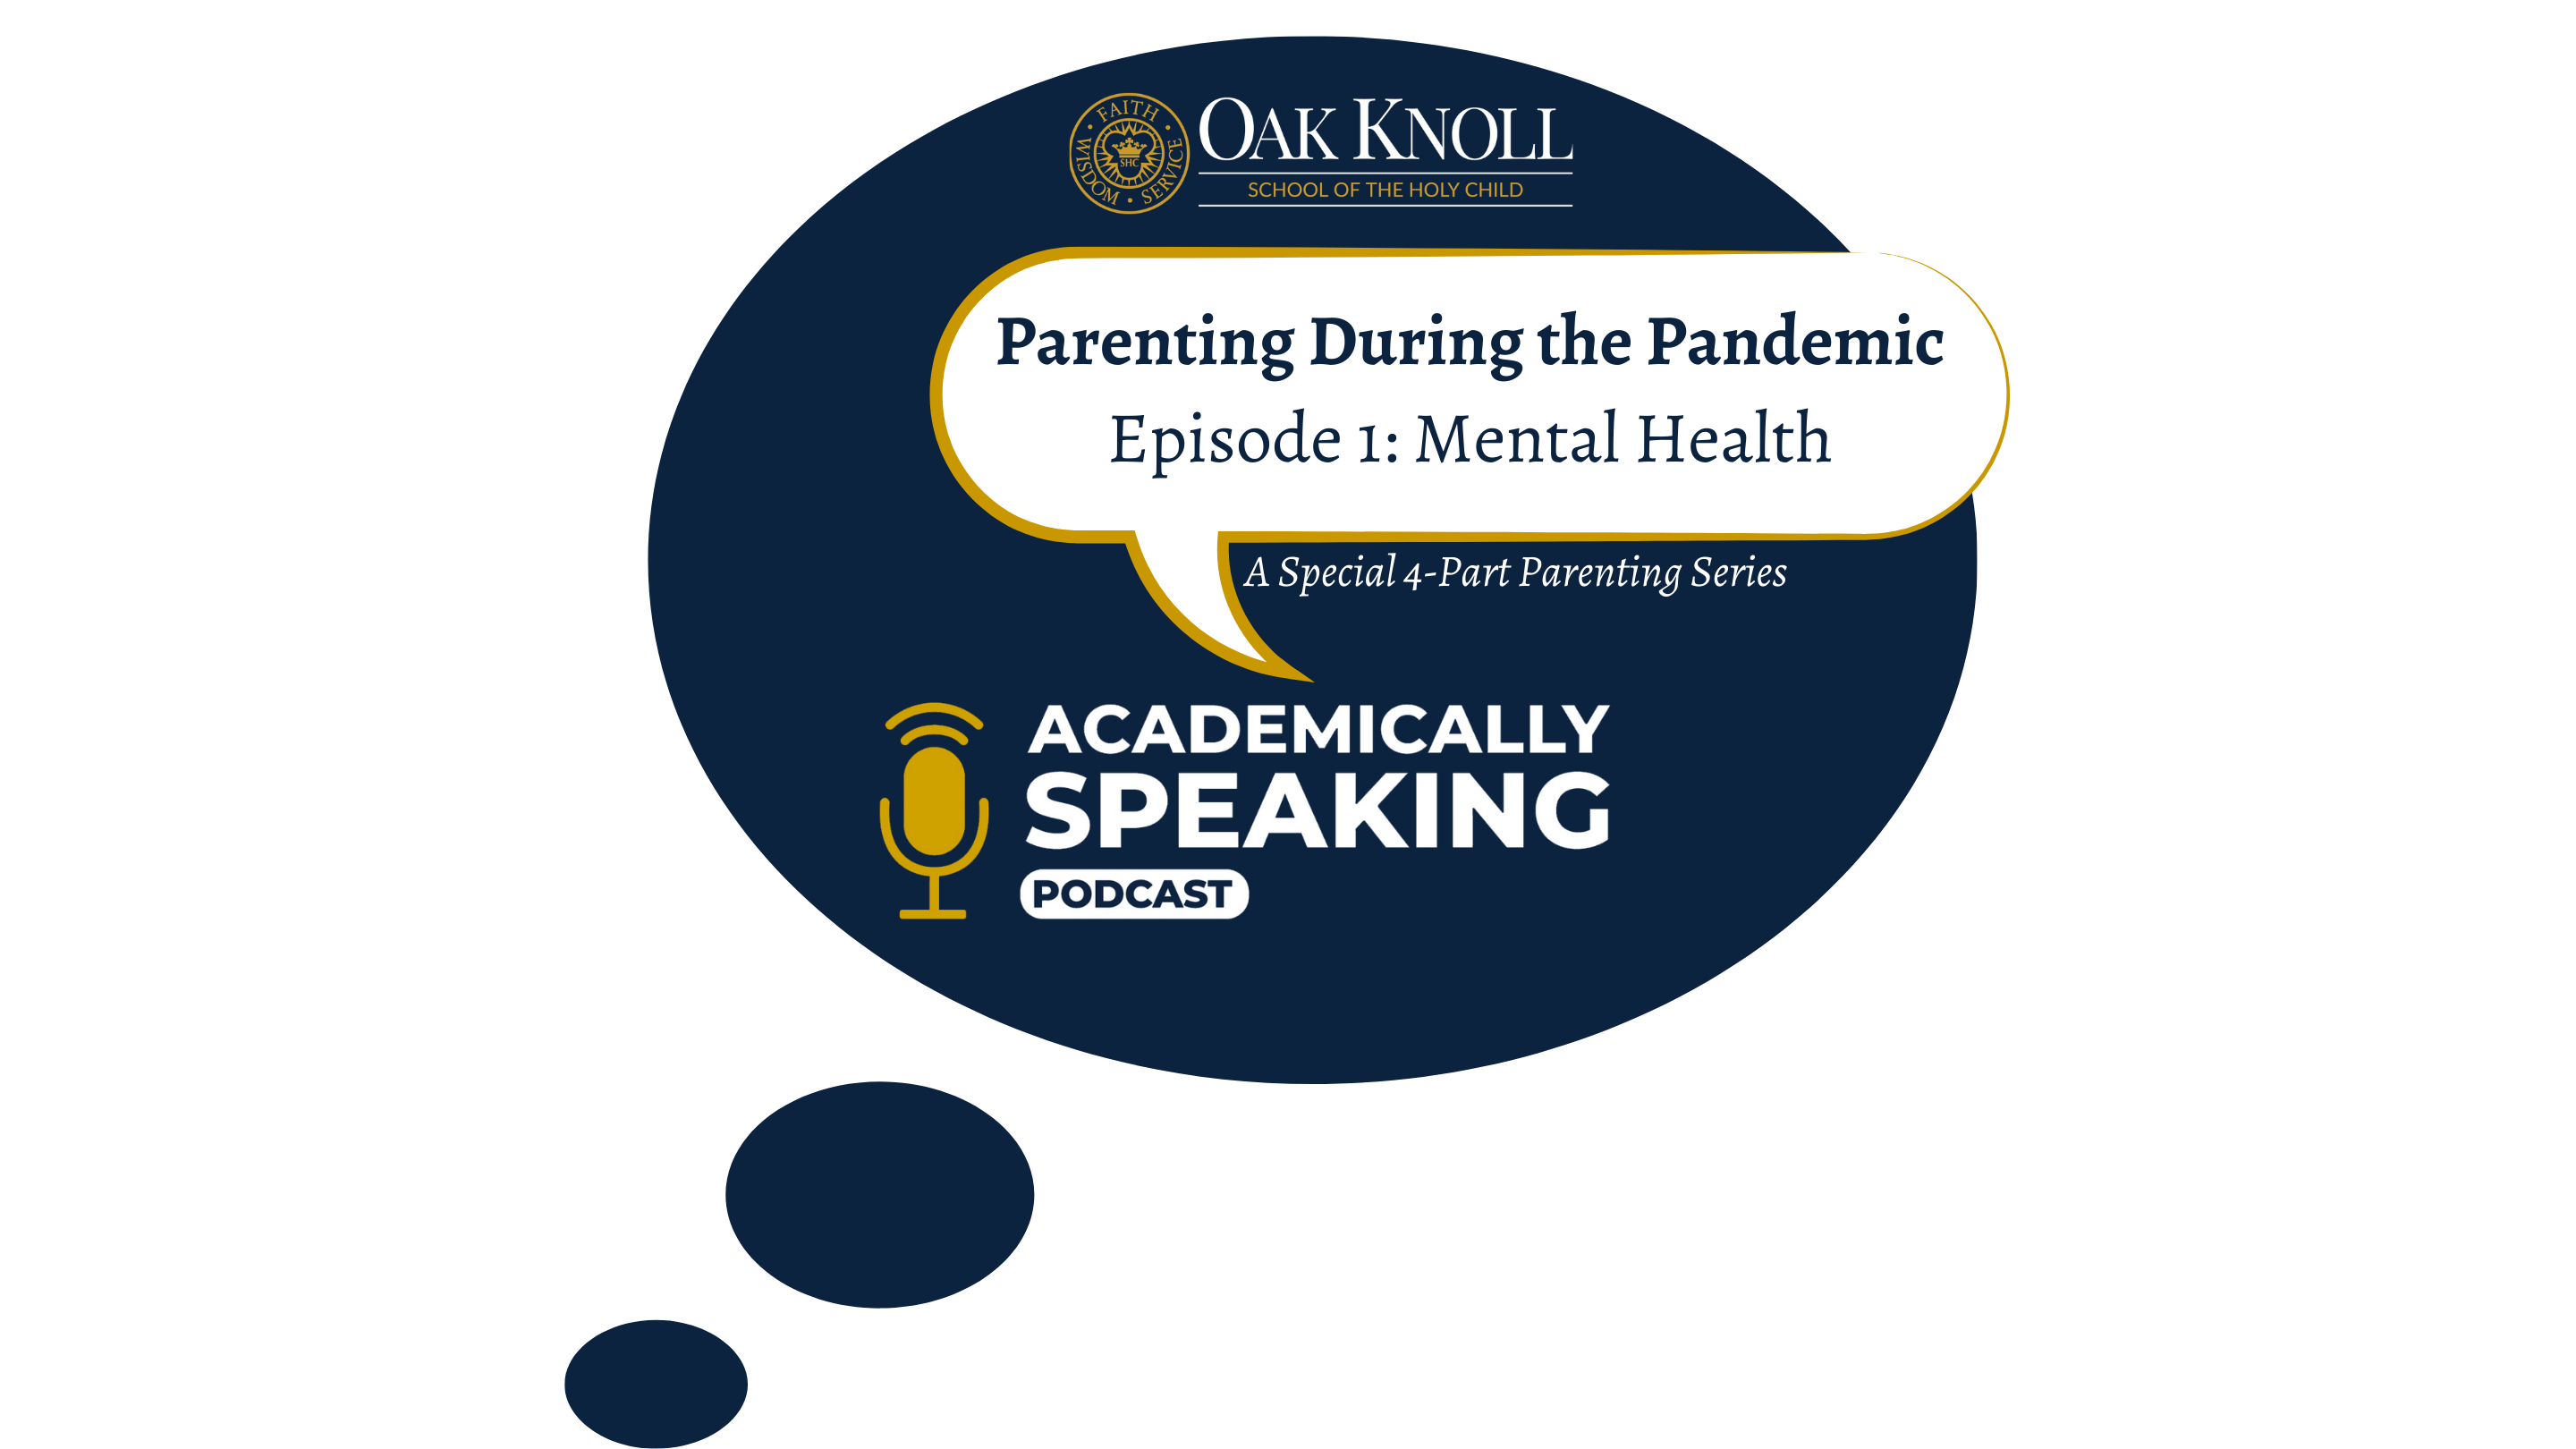 Podcast Parenting During the Pandemic